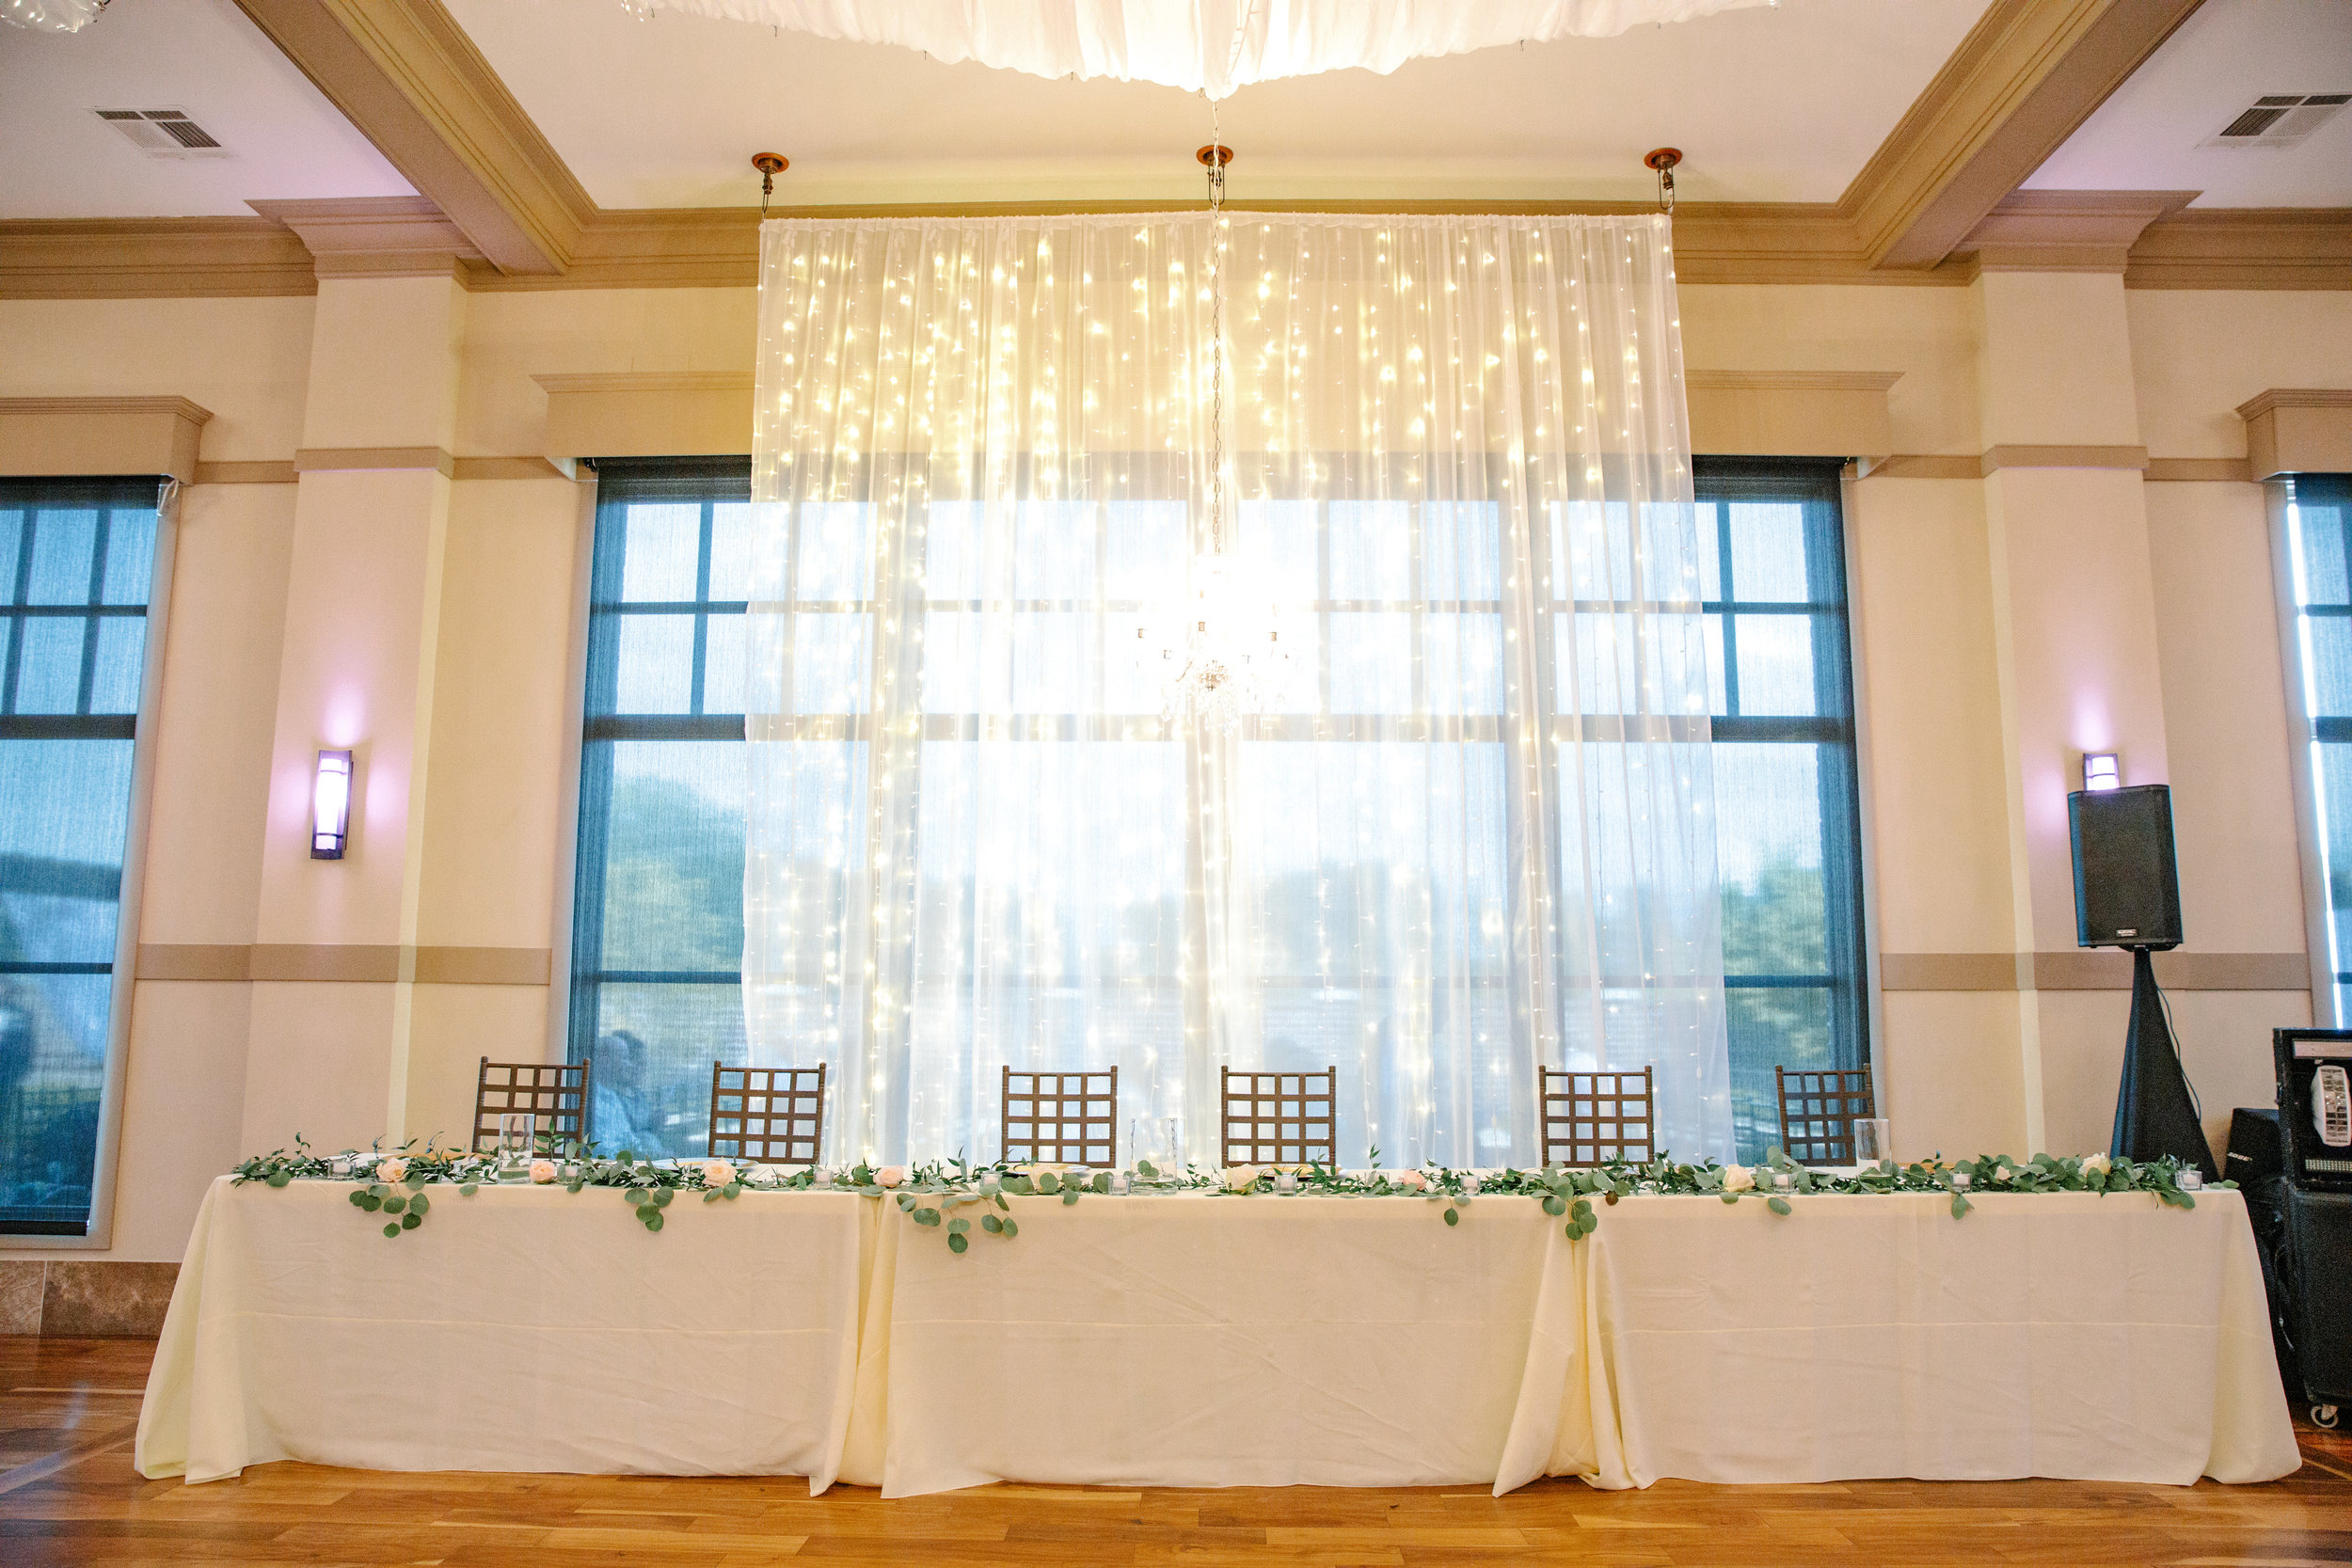 des moines iowa wedding venues NOAHS